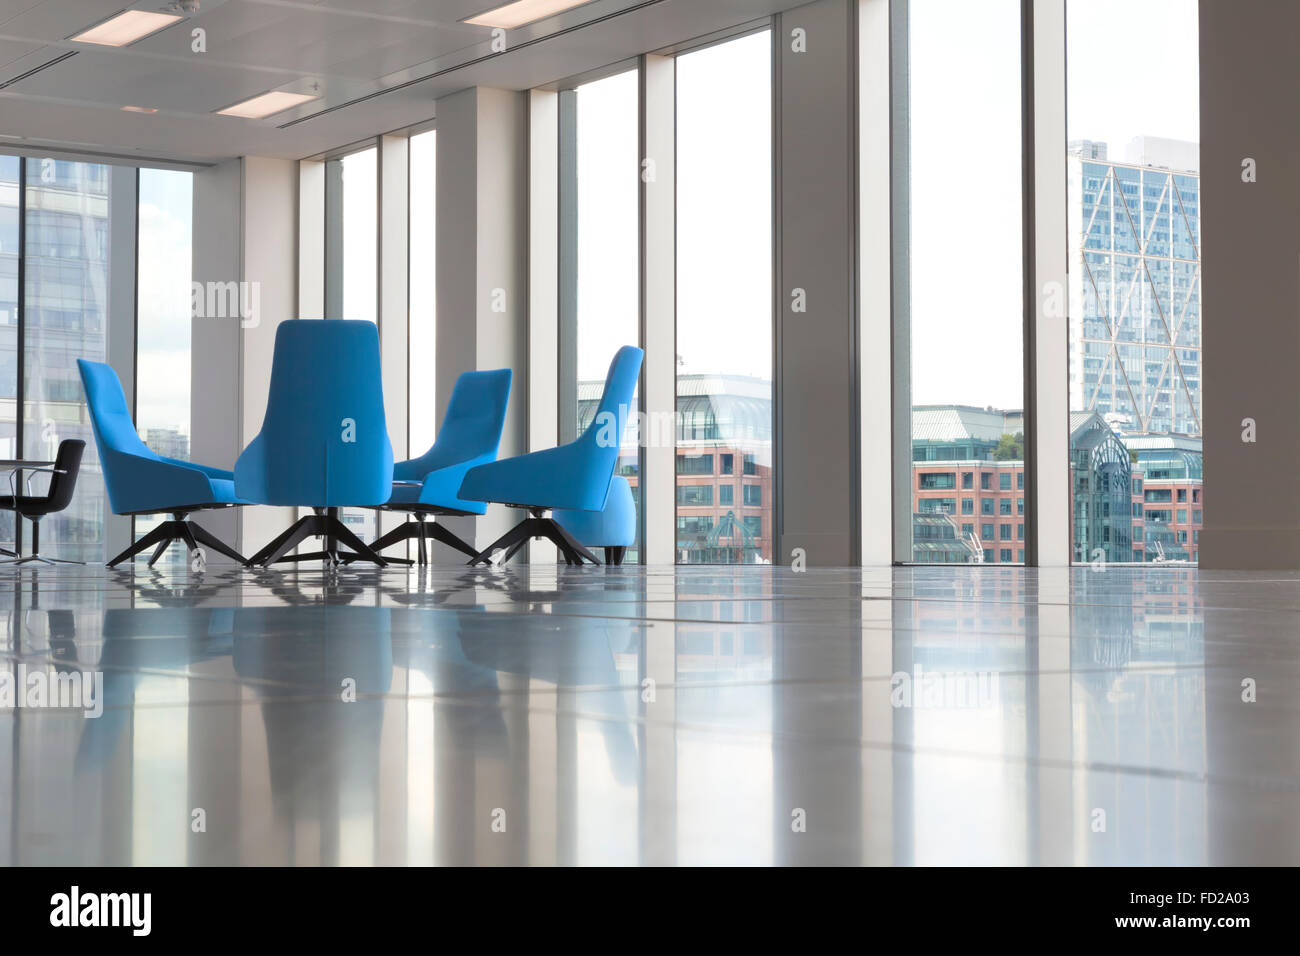 Modern office interior with glass windows and comfortable blue arm chairs in the corner - Stock Image